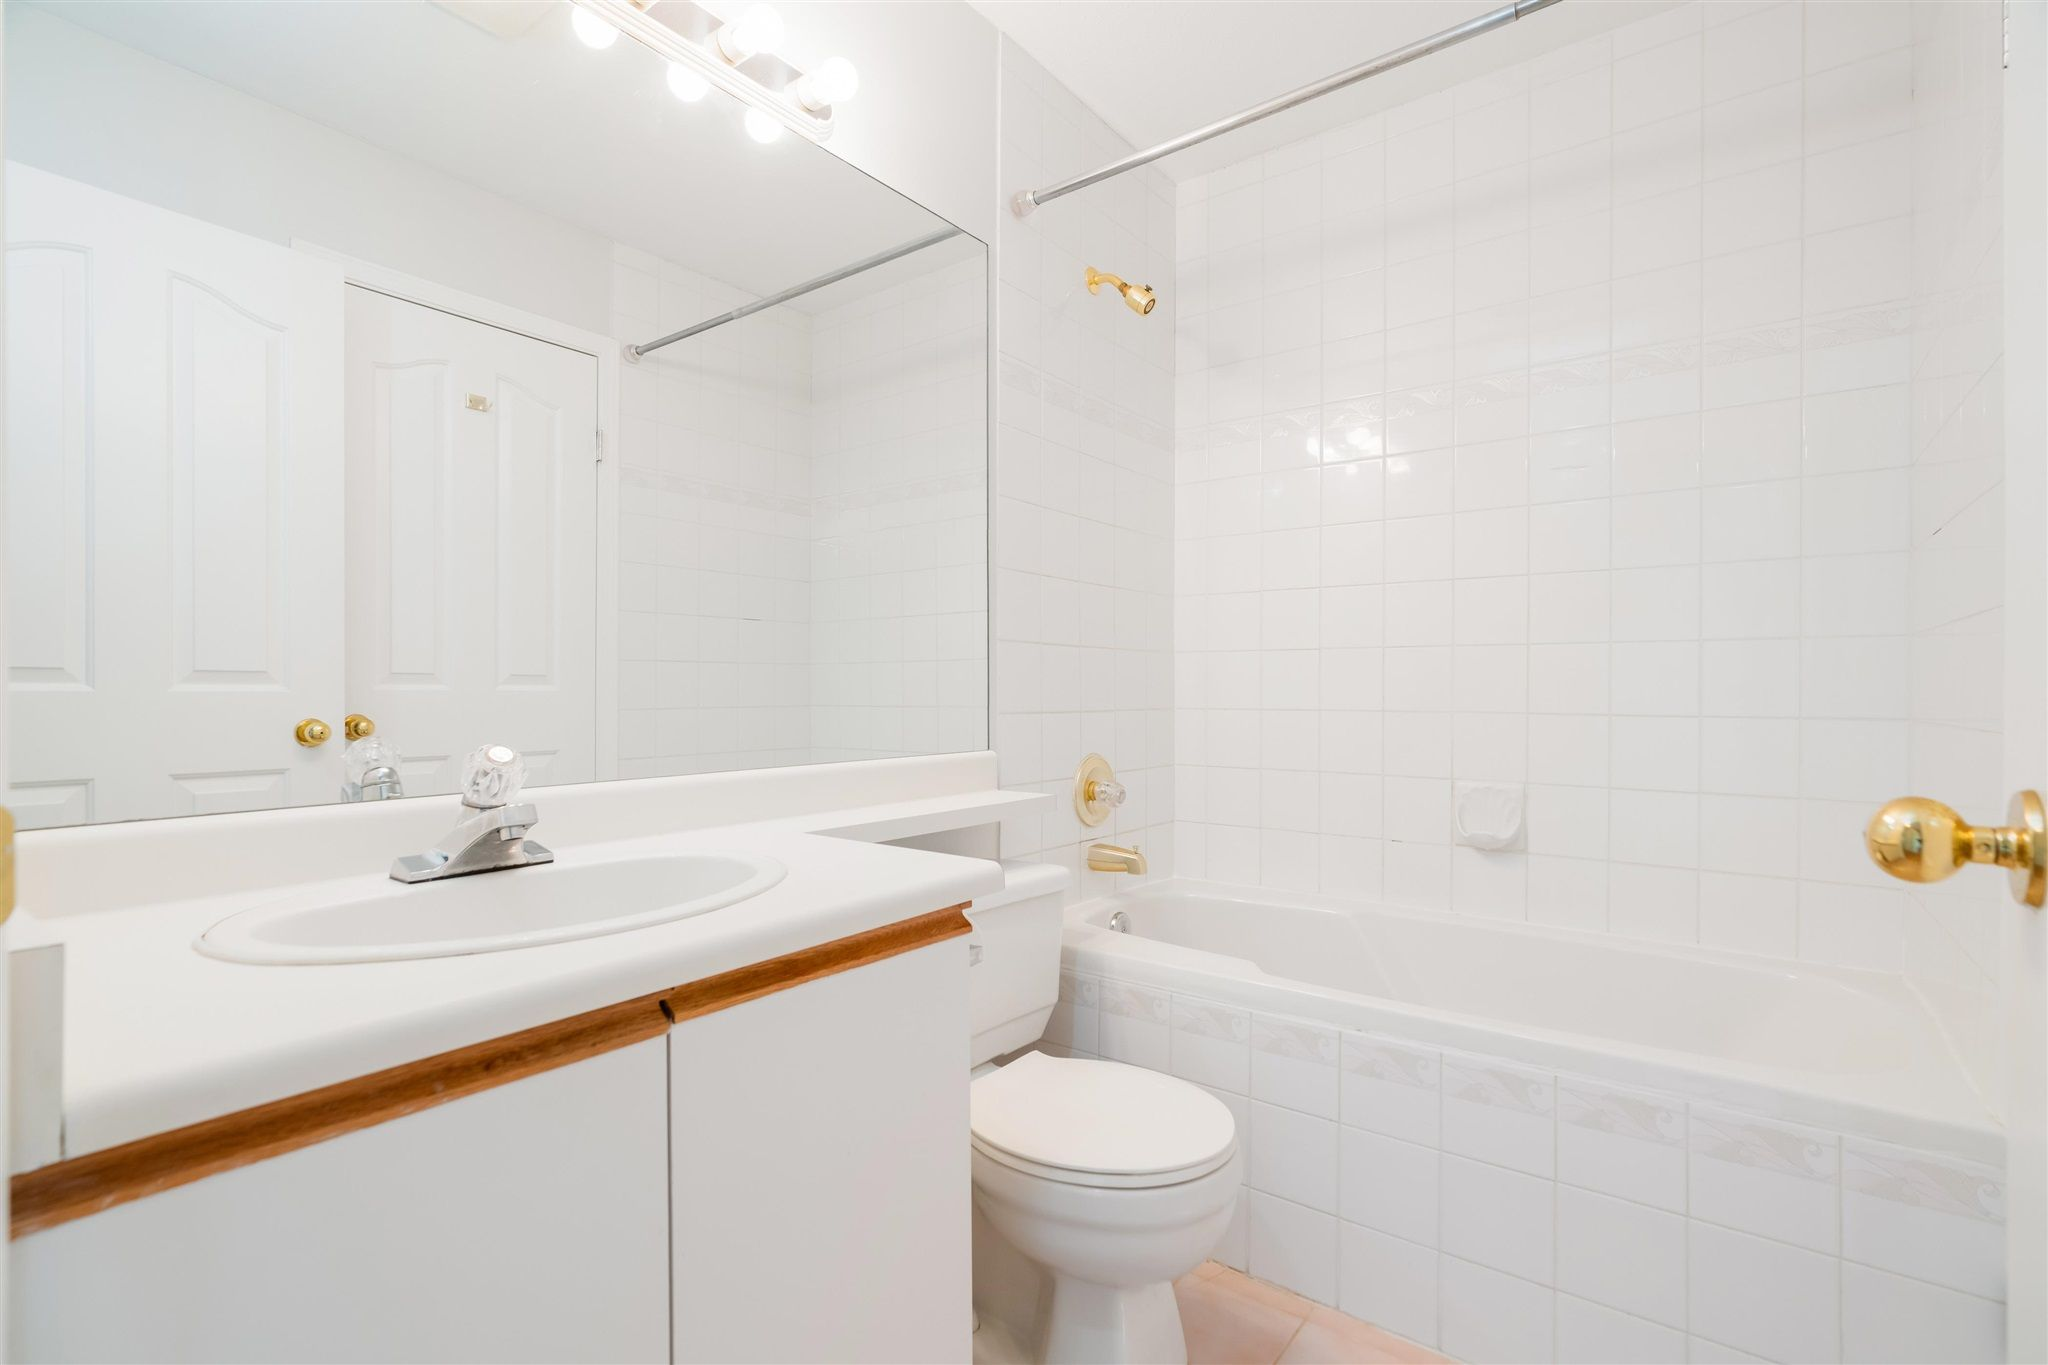 Photo 19: Photos: 303 1171 PIPELINE Road in Coquitlam: New Horizons Condo for sale : MLS®# R2607932